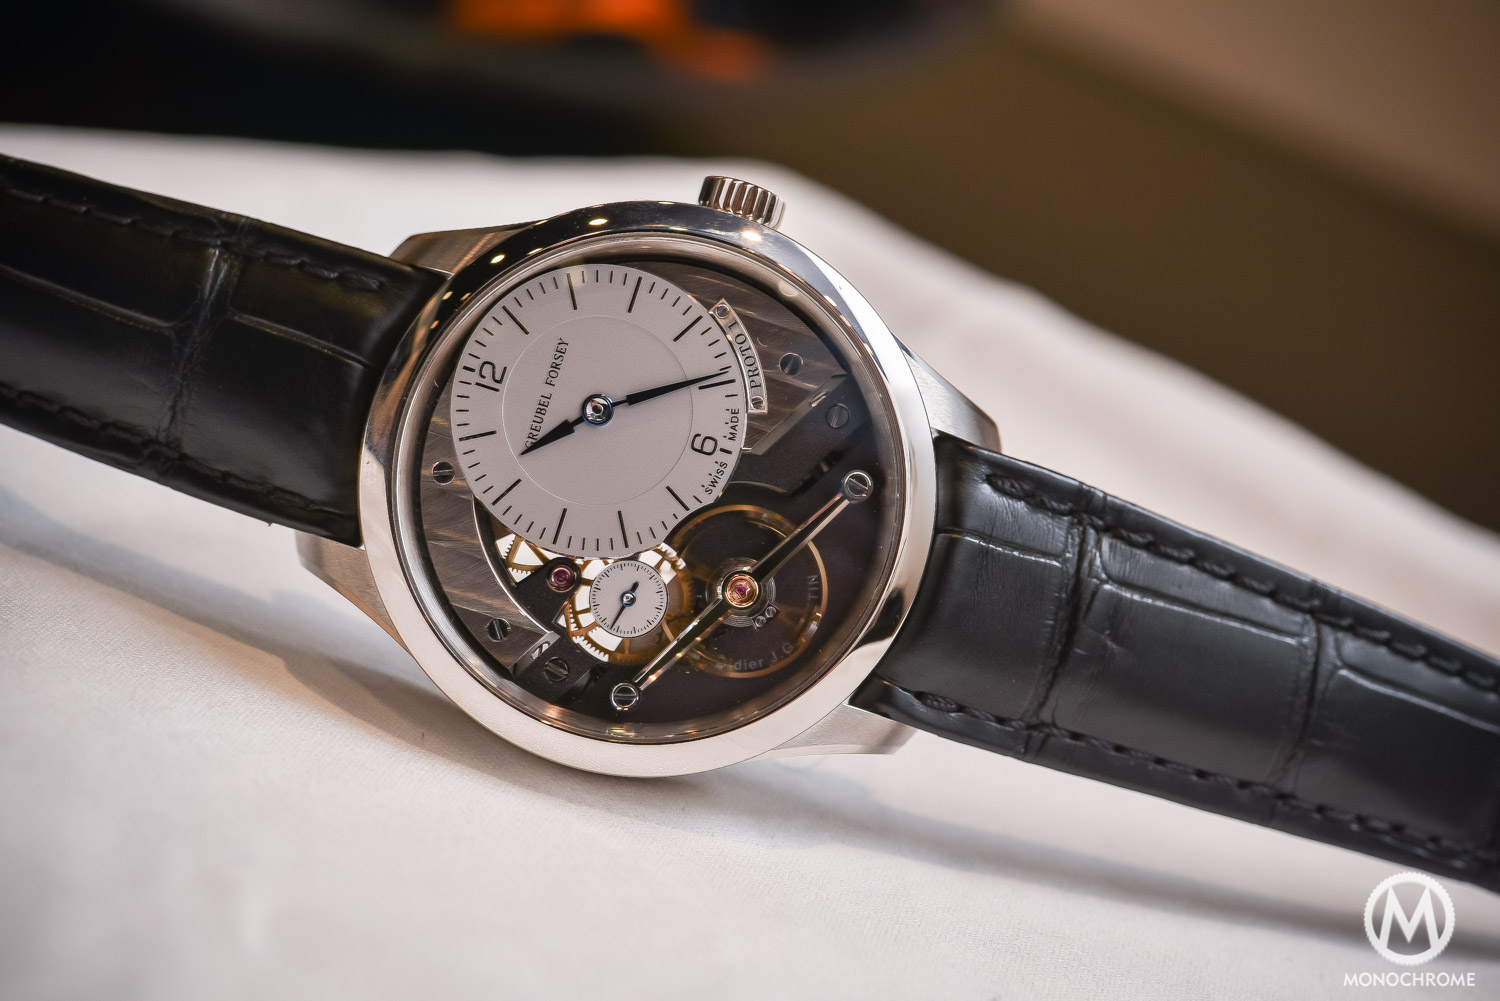 Greubel Forsey Signature 1 - Stainless steel entry level - SIHH 2016 - case